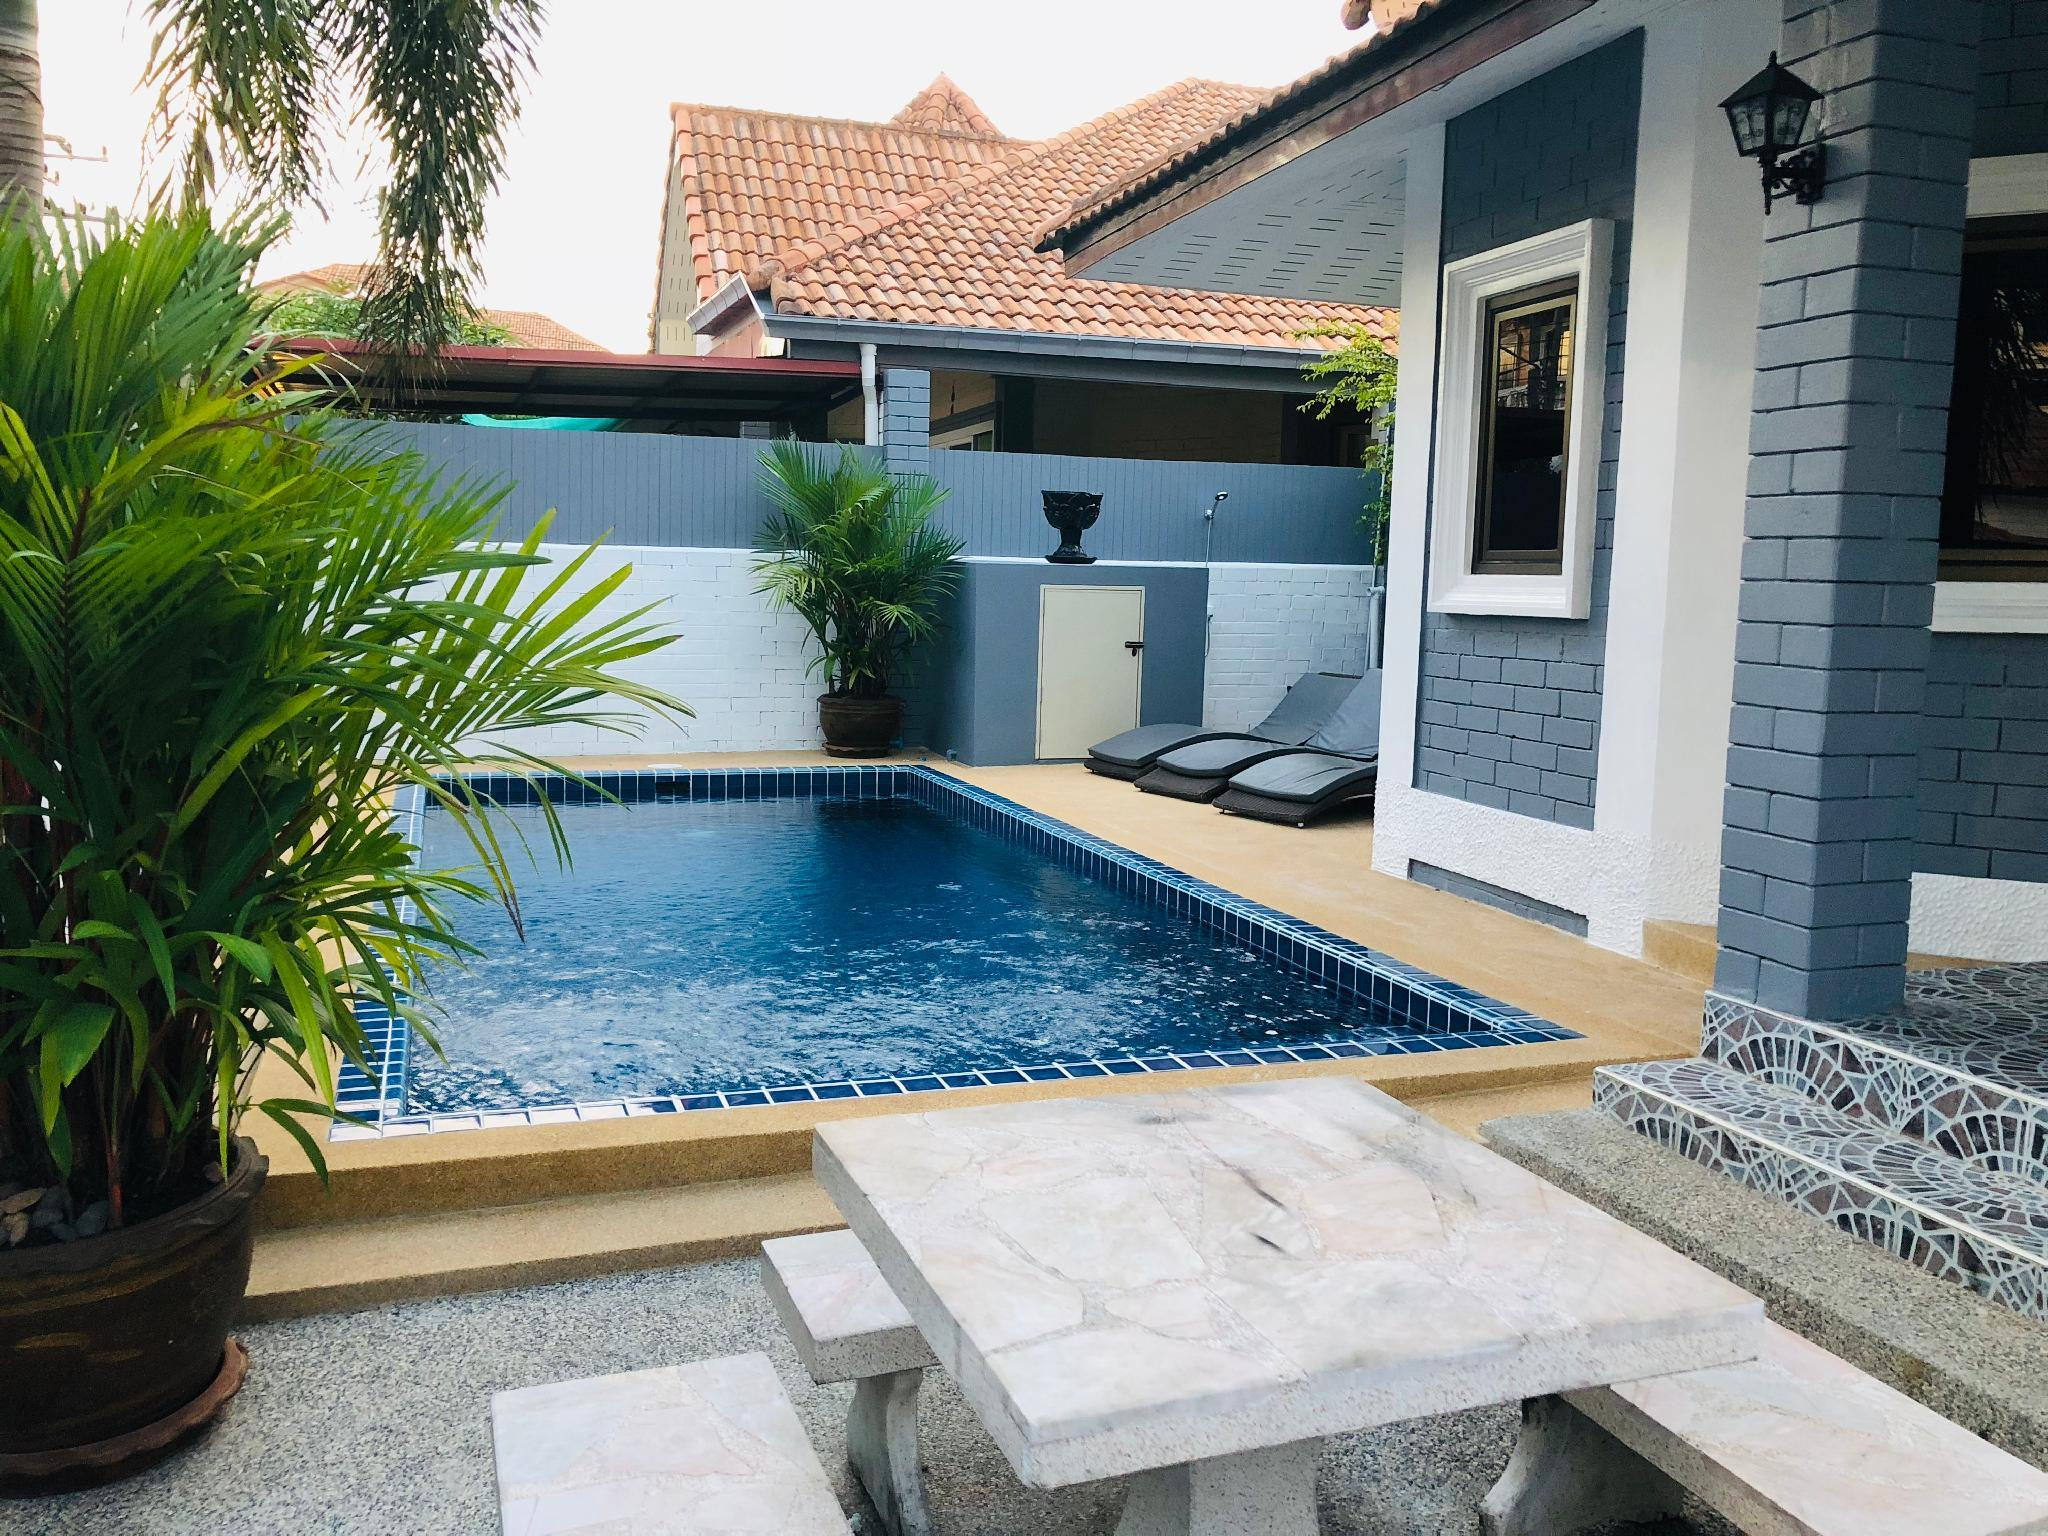 Villa 3 BDR With Pool Near Beach And Walking Street